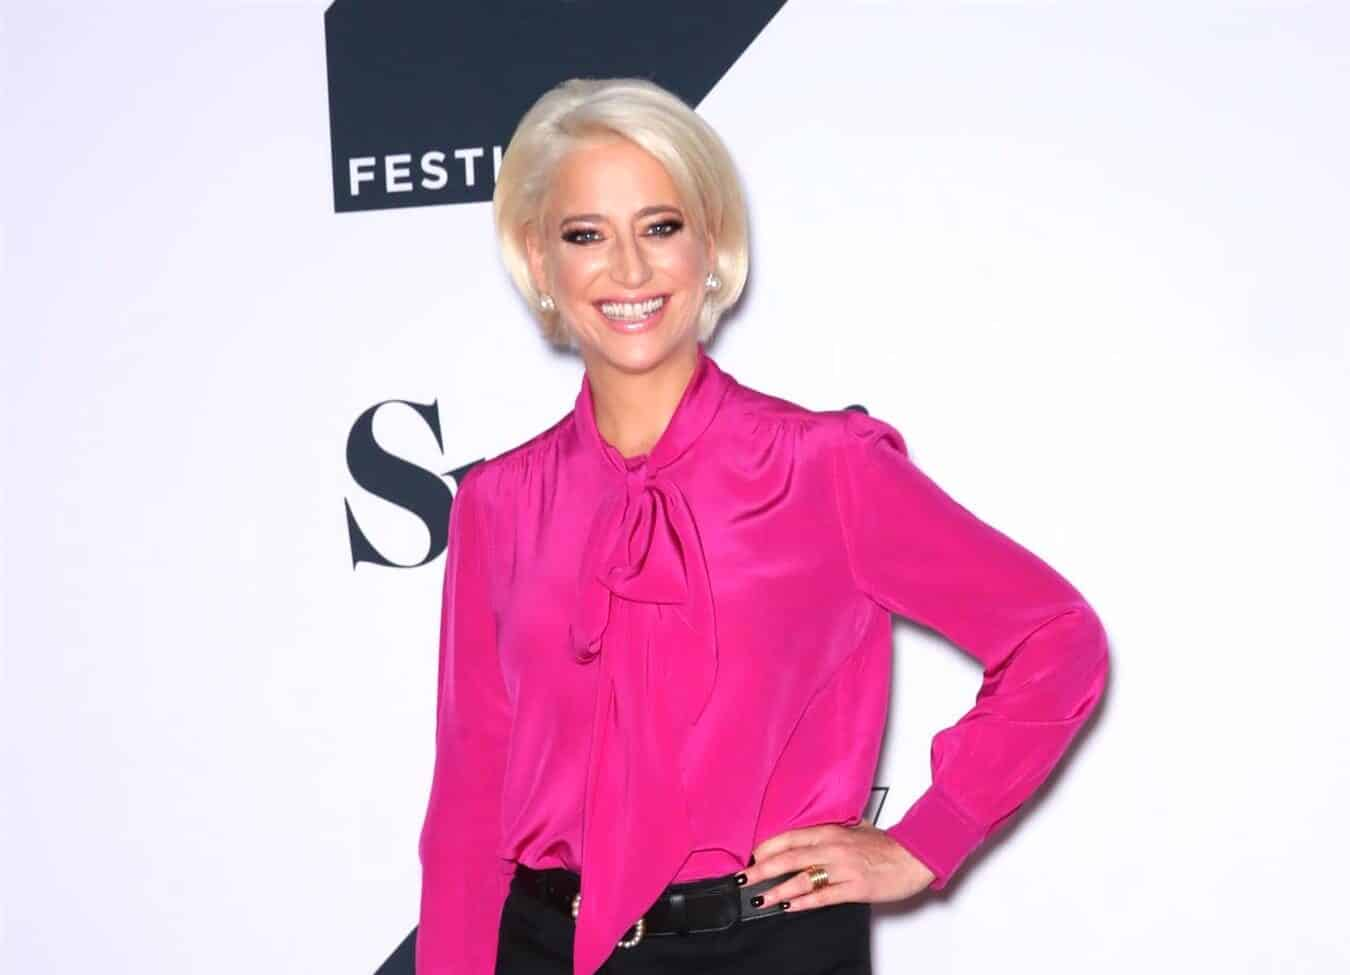 Dorinda Medley Admits She Was Fired by Bravo and She Didn't Want to Leave RHONY, Opens Up About Exit and Tearful Phone Call to Her Mother